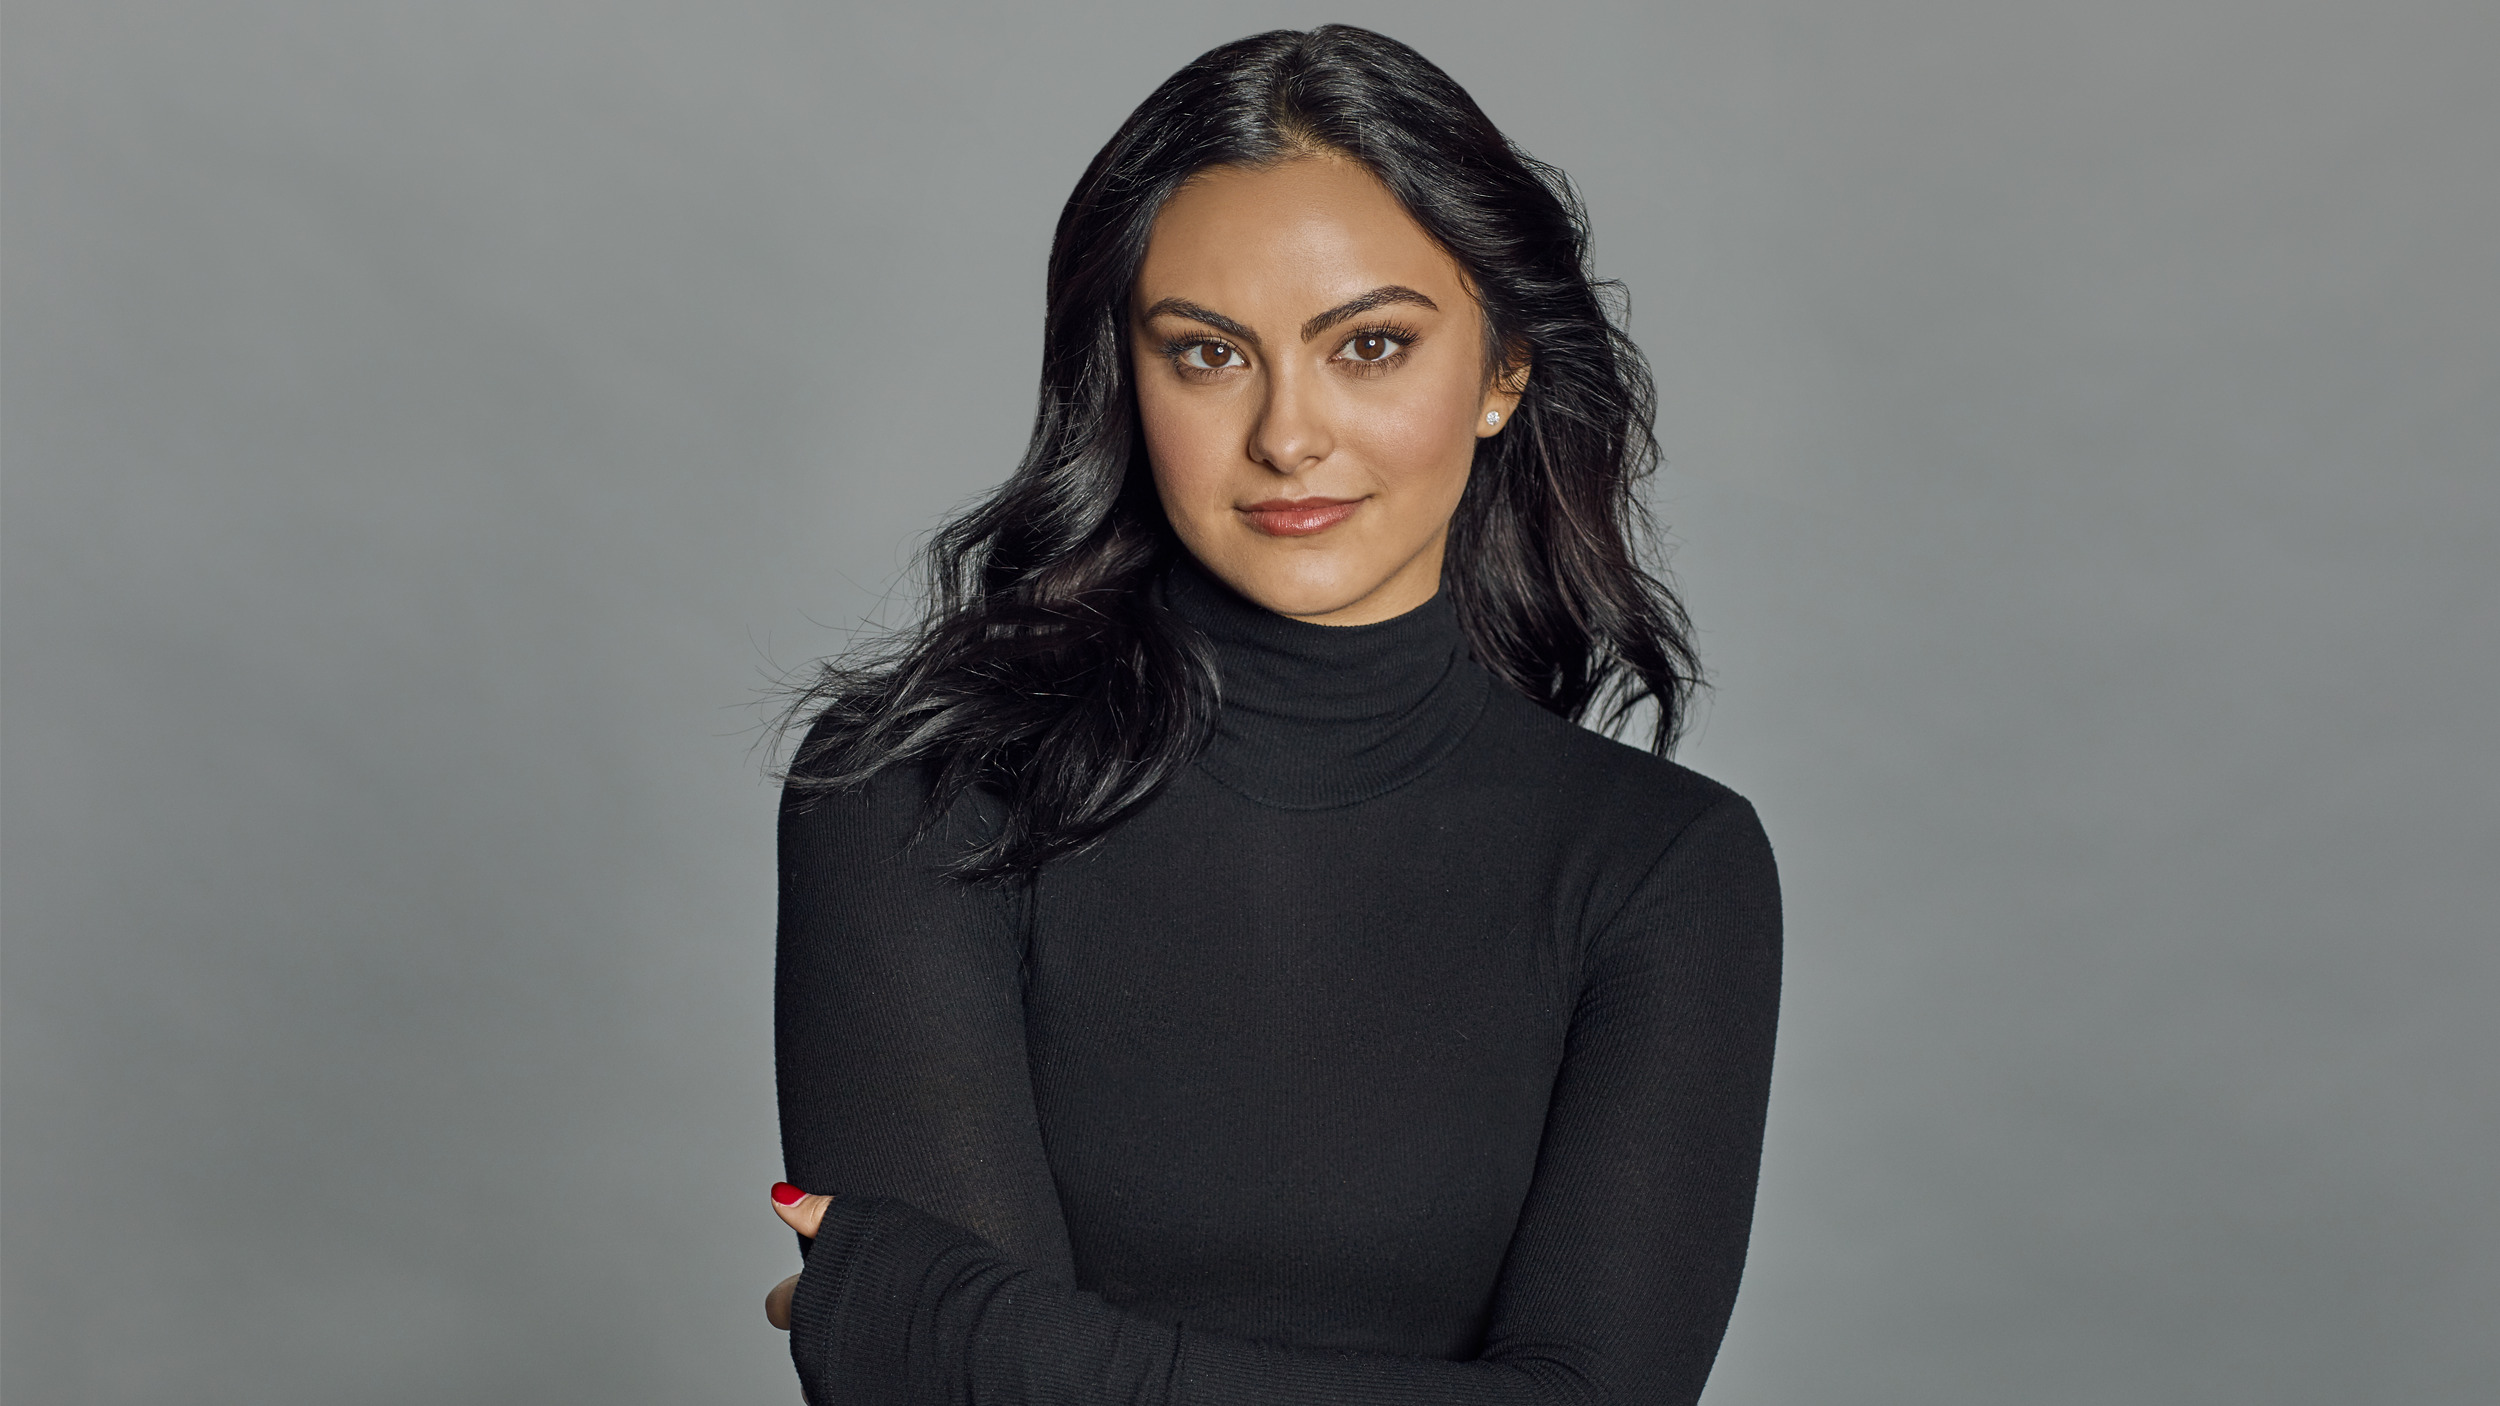 Images Camila Mendes nude (57 photo), Pussy, Paparazzi, Twitter, lingerie 2017